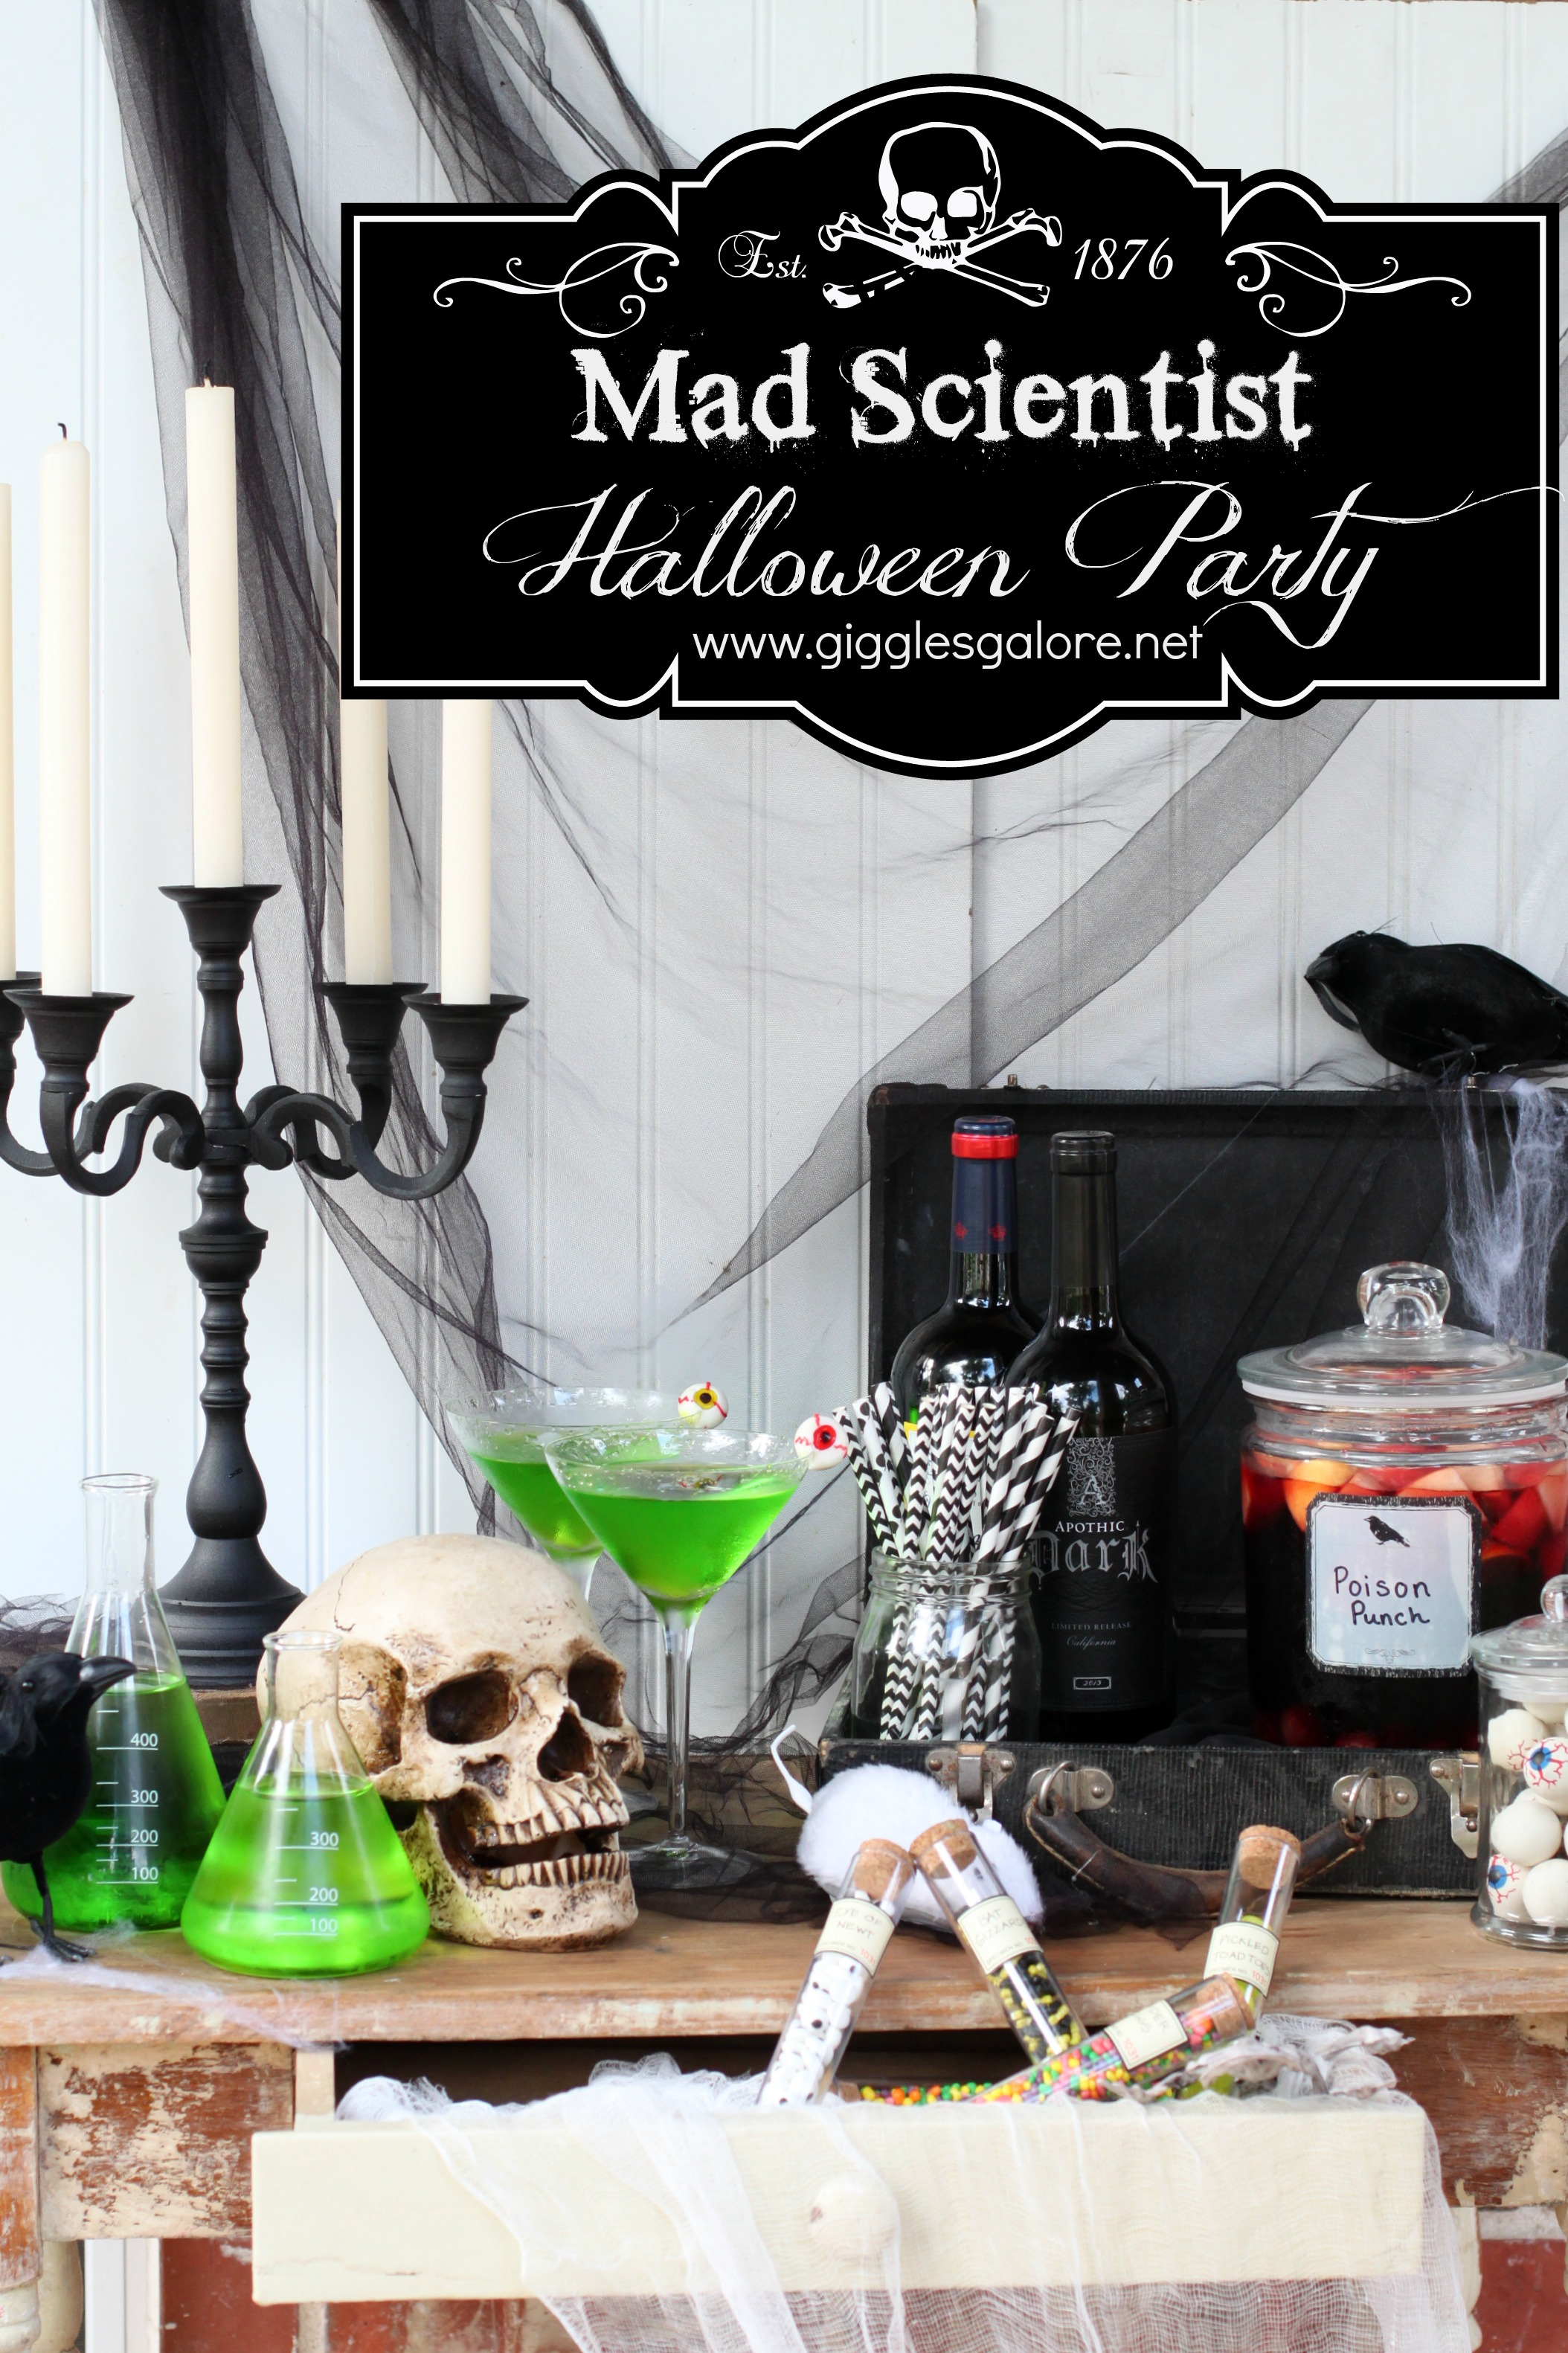 Mad Scientist Halloween Party Giggles Galore